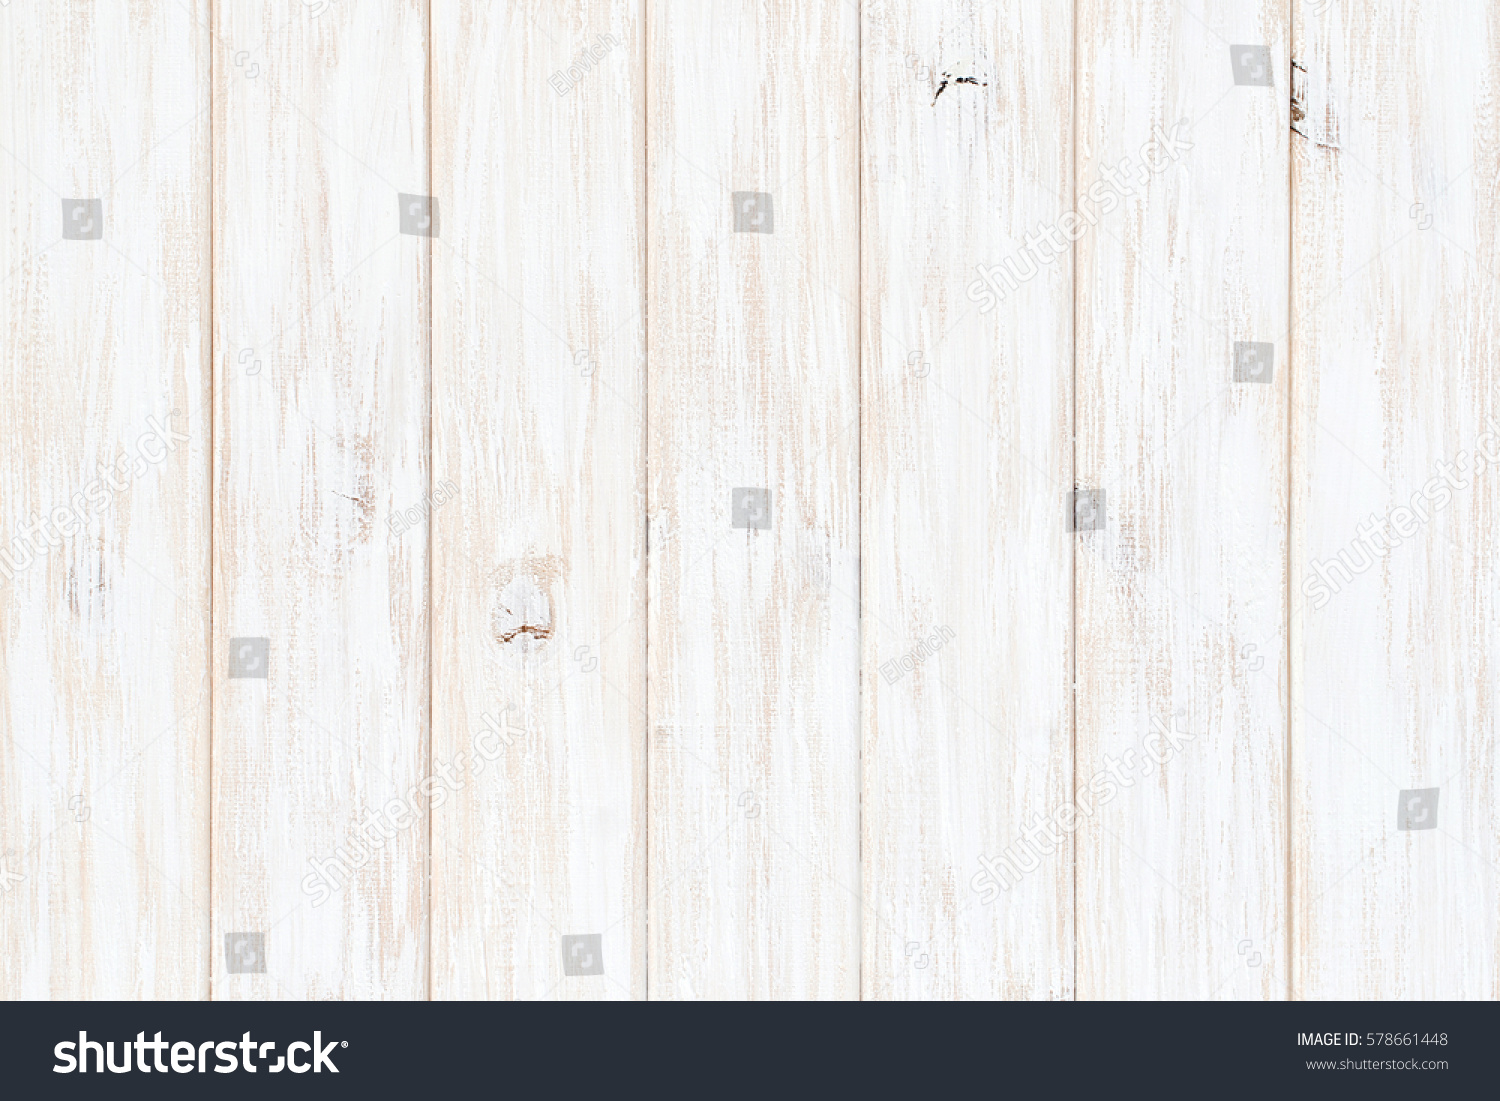 Wood table top view wooden table top view photo - White Wood Texture Background Wooden Table Top View